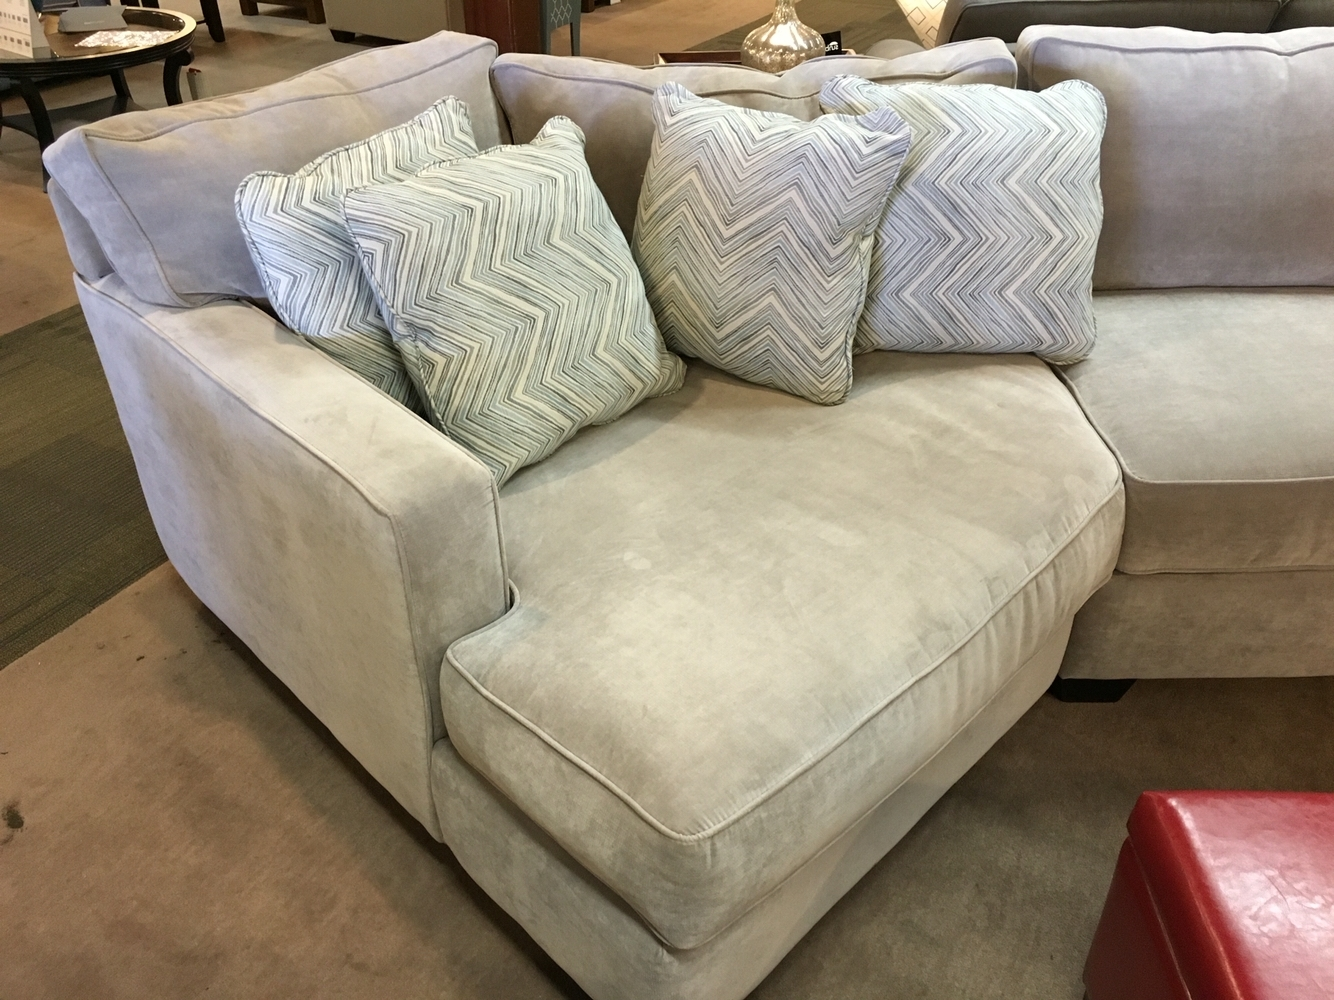 Favorite Sectional Couch With A Cuddler Chaisejonathan Louis Furniture Inside Cuddler Chaises (View 7 of 15)